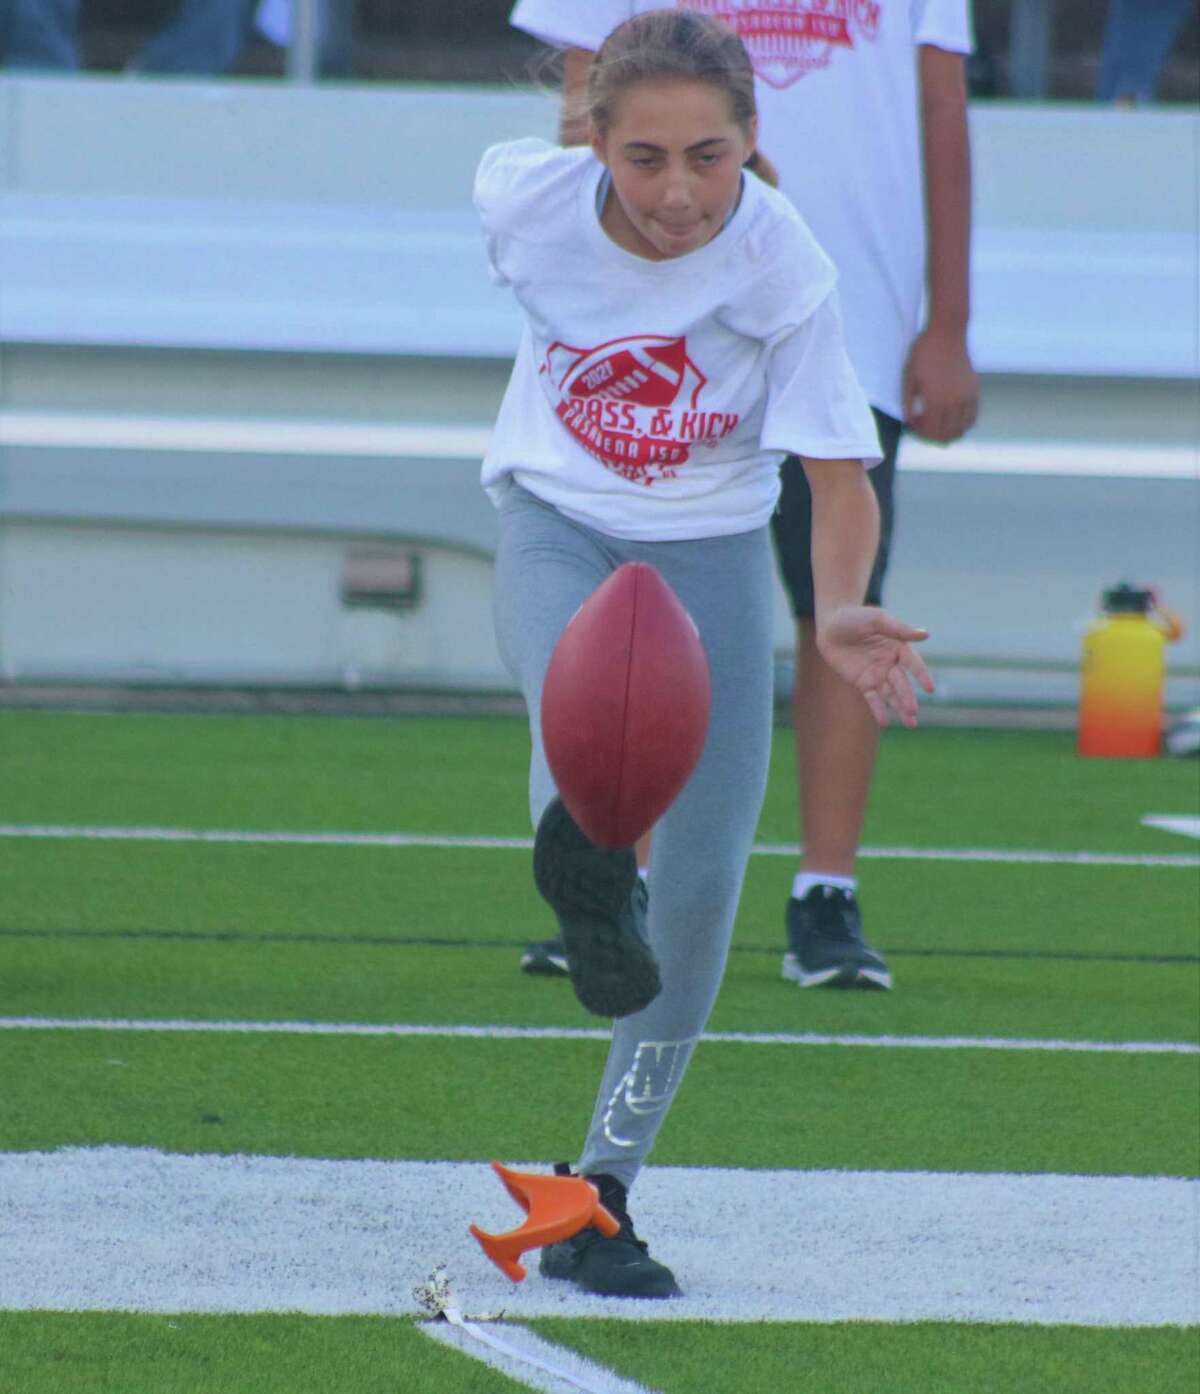 Morris Middle School's Destiny Sidiropoulos attempts her punt try during the school district's Punt, Pass & Kick competition at Veterans Memorial Stadium Monday.